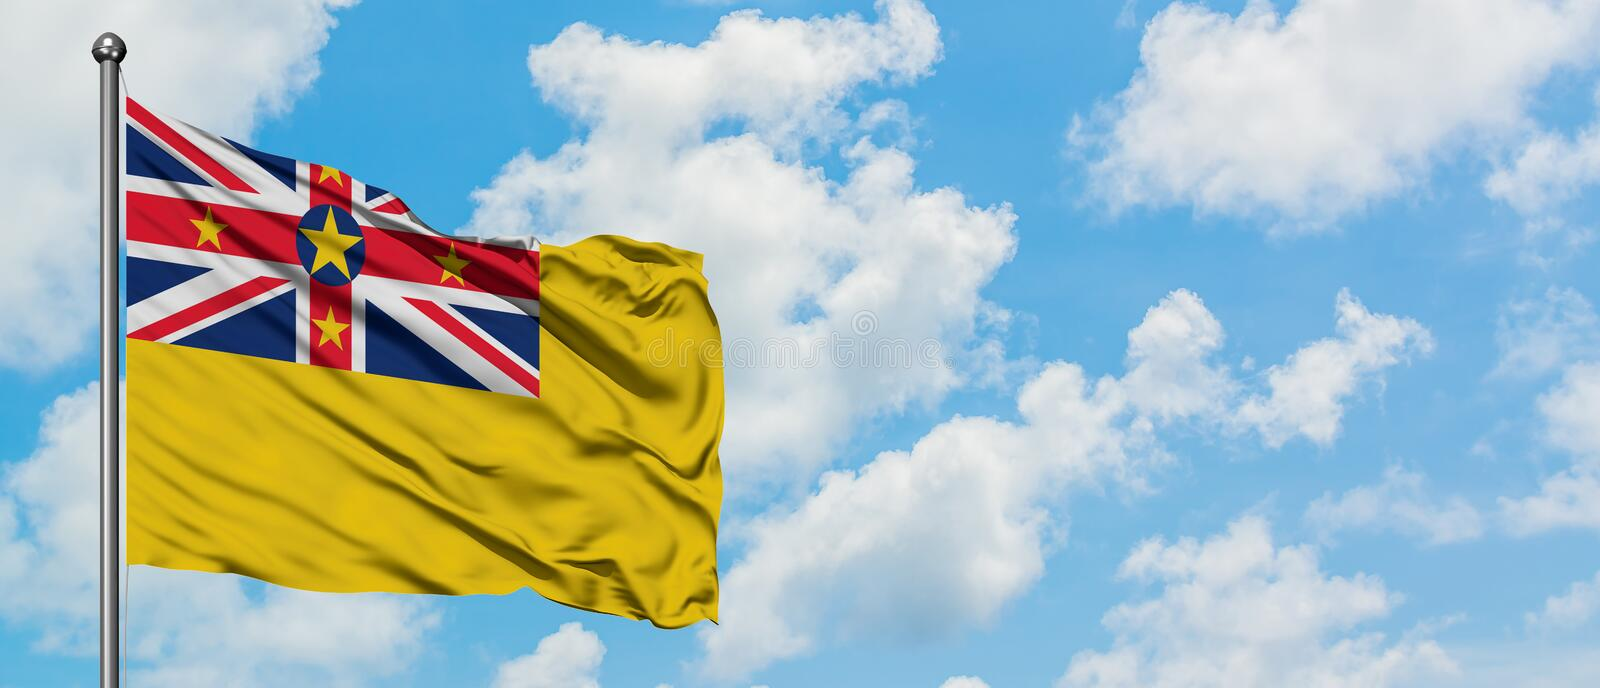 Niue flag waving in the wind against white cloudy blue sky. Diplomacy concept, international relations.  royalty free stock photography